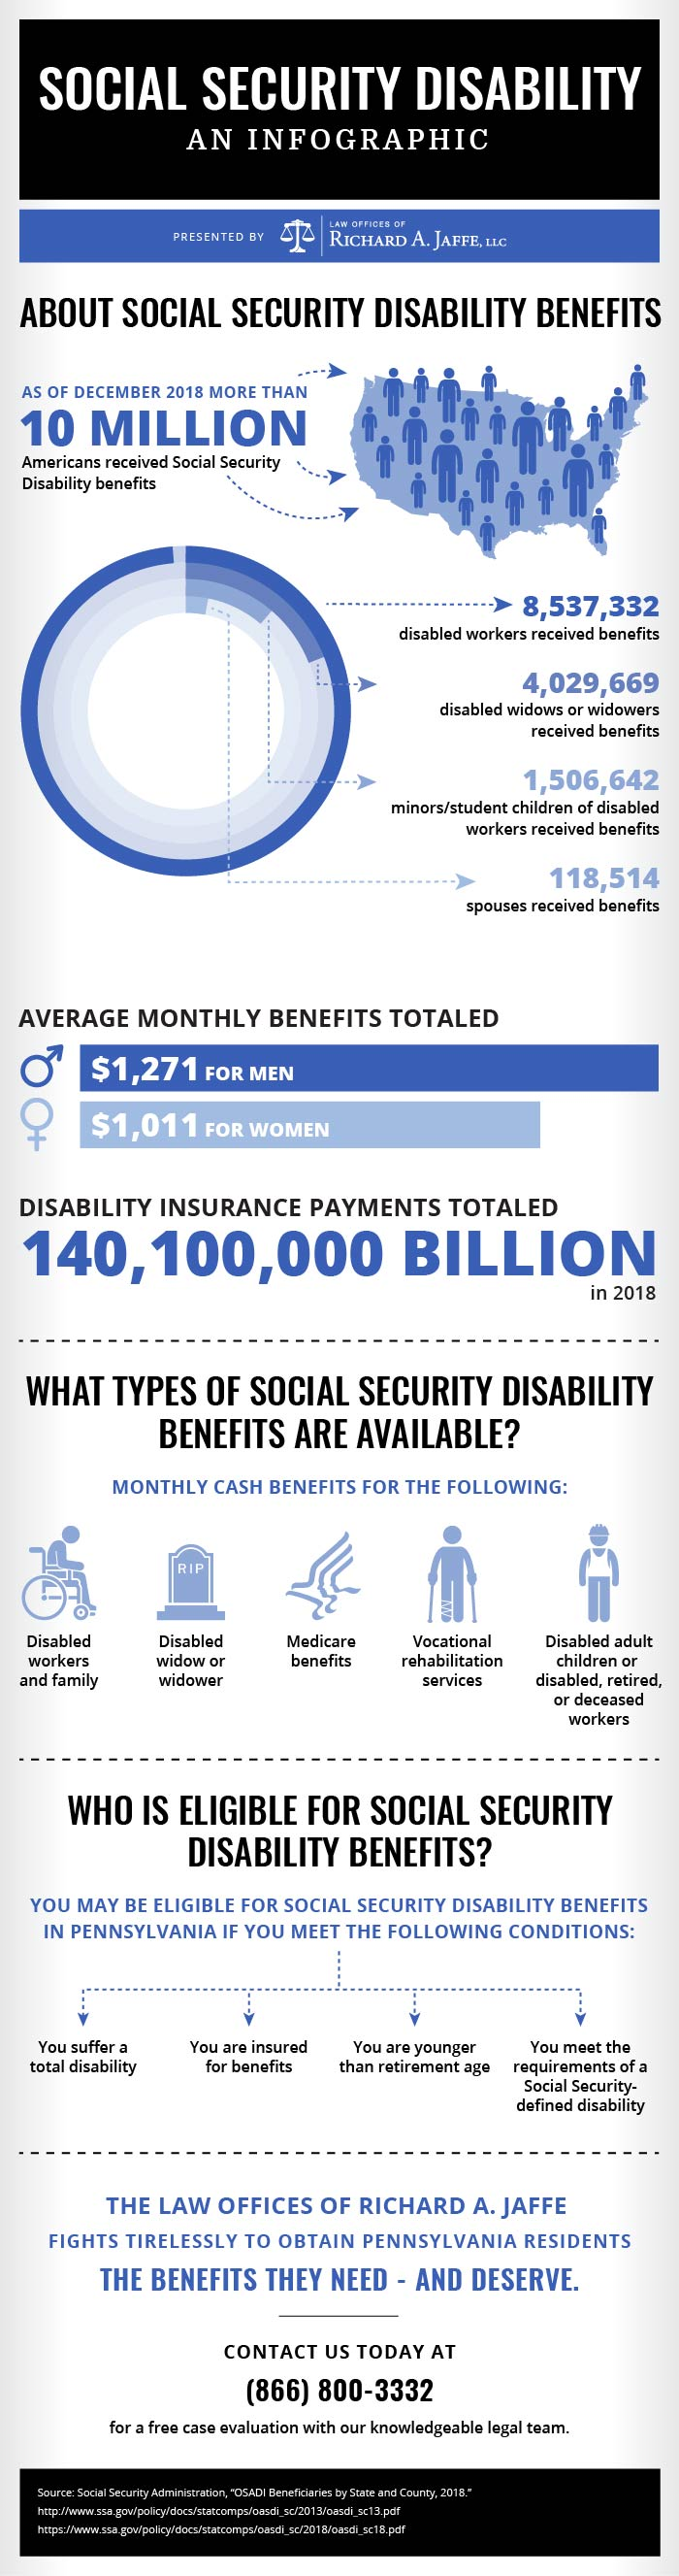 Jaffe Social Security Disability infographic